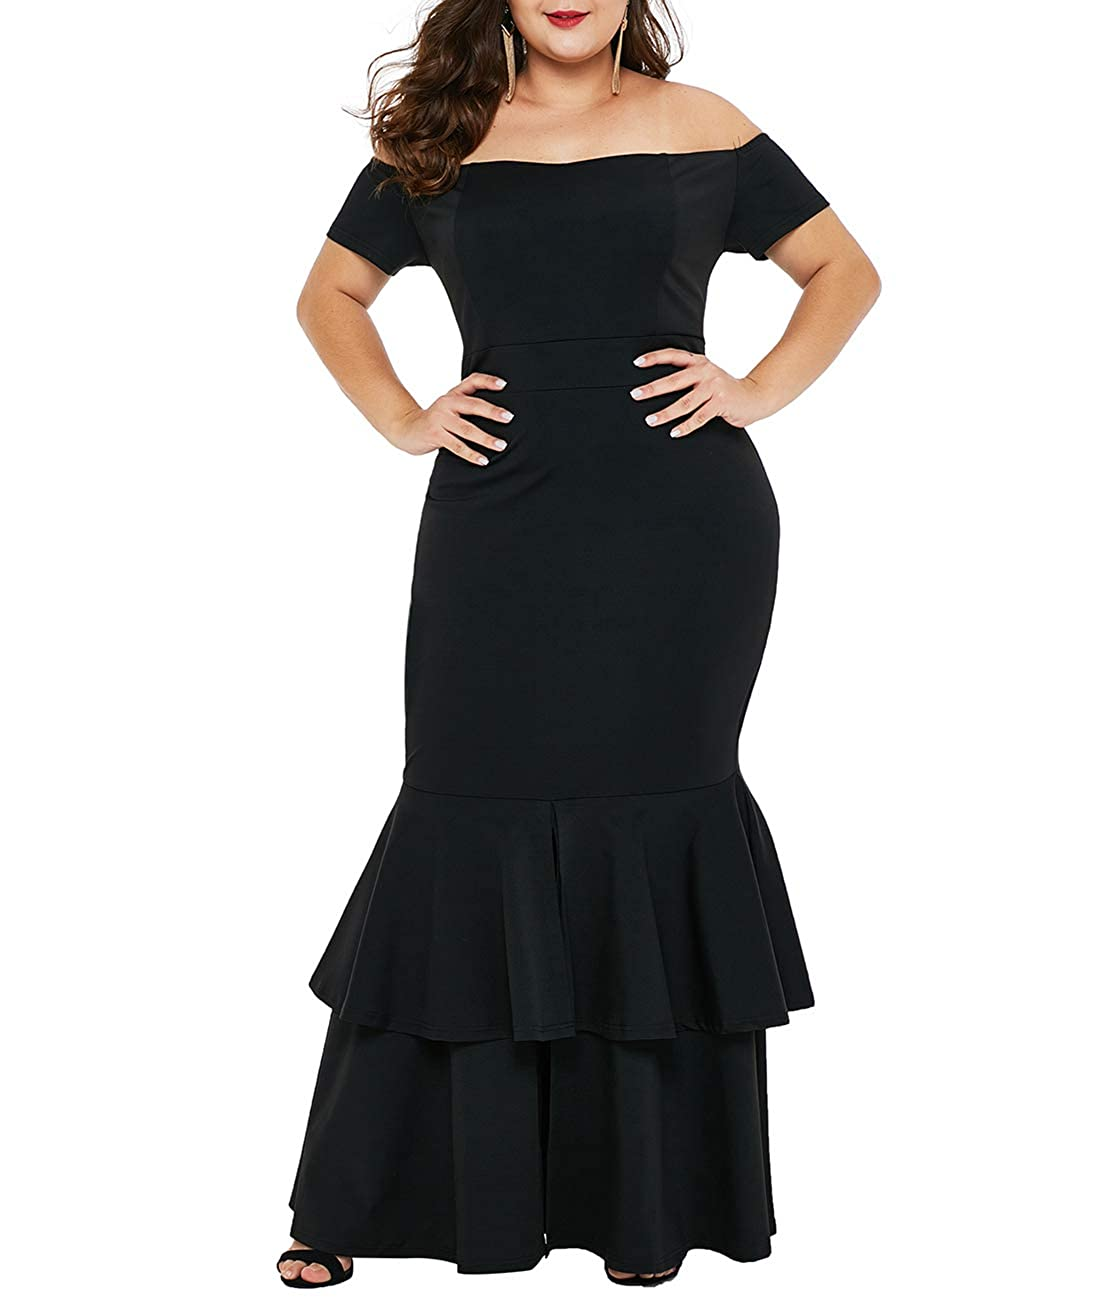 cb6ac4047f Lalagen Womens Off Shoulder Bodycon Ruffle Mermaid Plus Size Party Maxi  Dress at Amazon Women s Clothing store